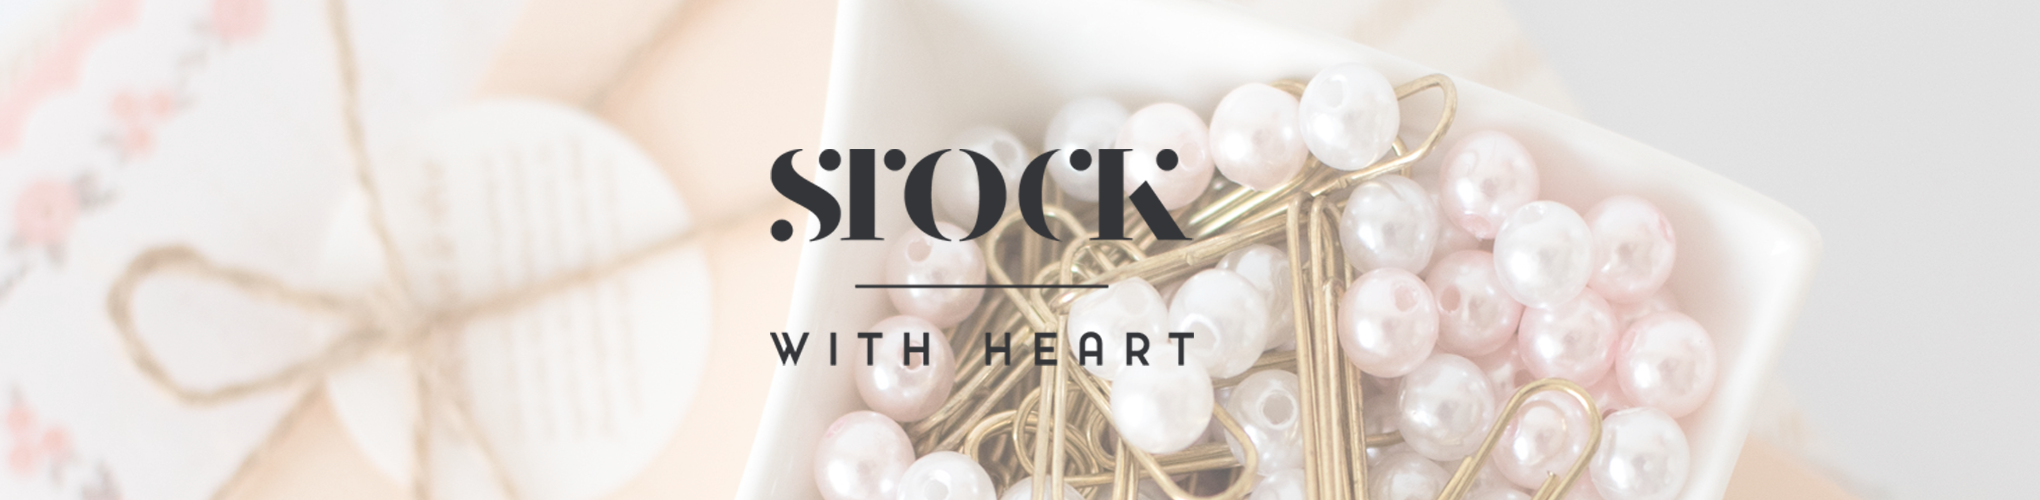 Stock With Heart feminine styled stock photos from bloggers, creatives, business owners and designers